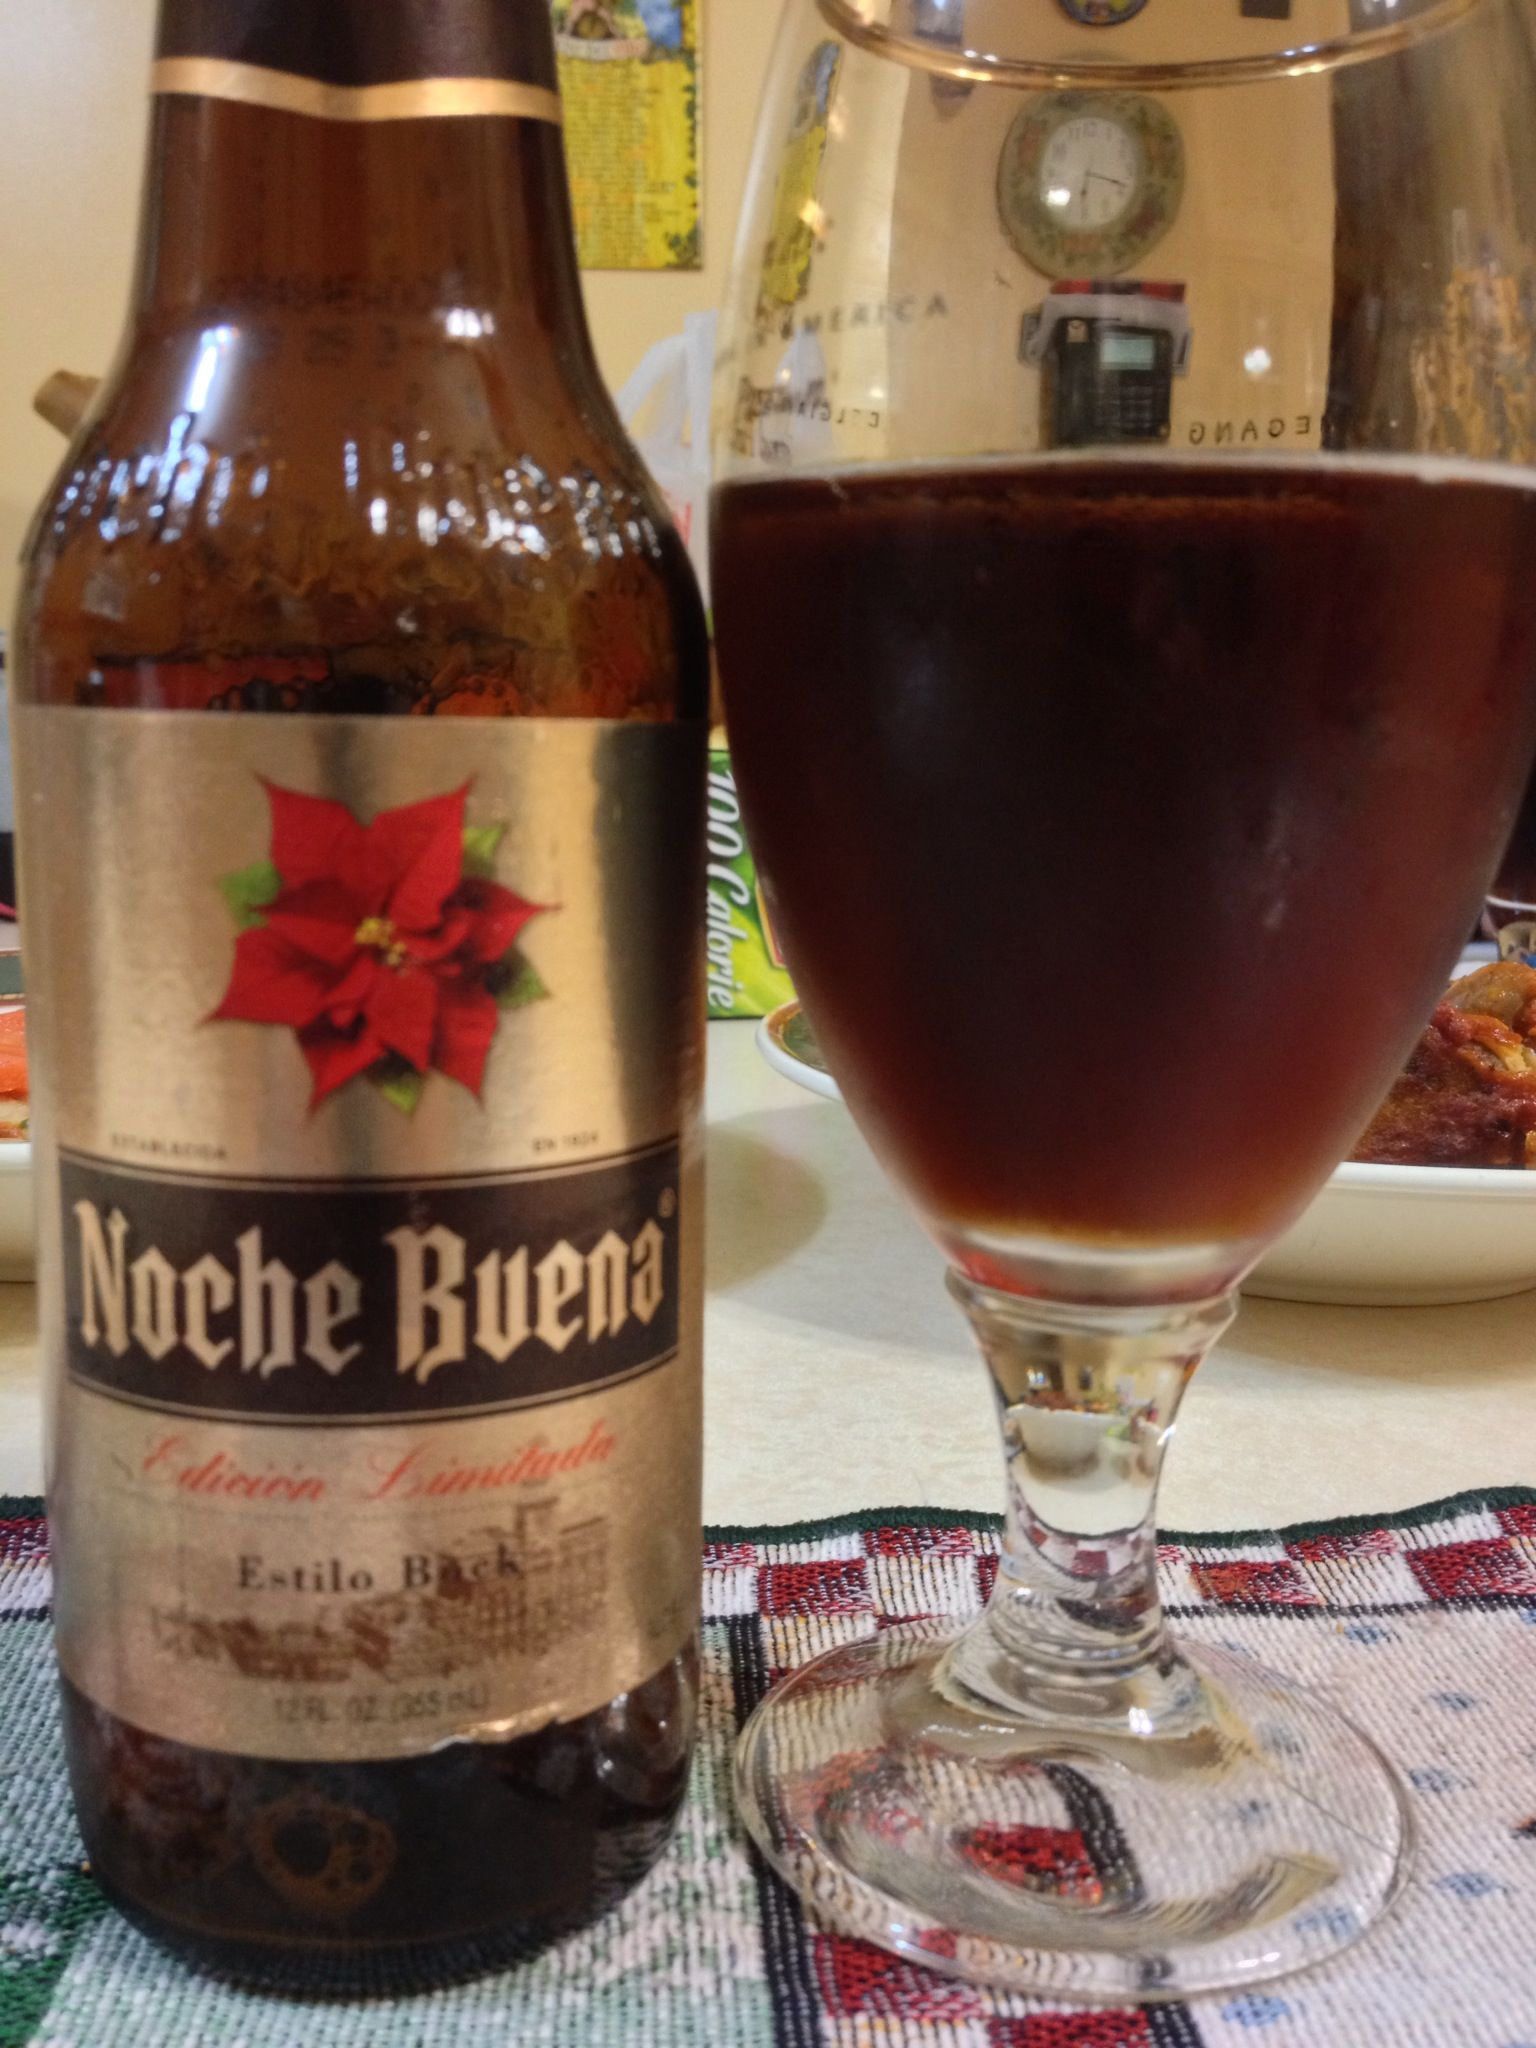 Christmas Mexican Beer Mexican Beer Beer Beer Bottle